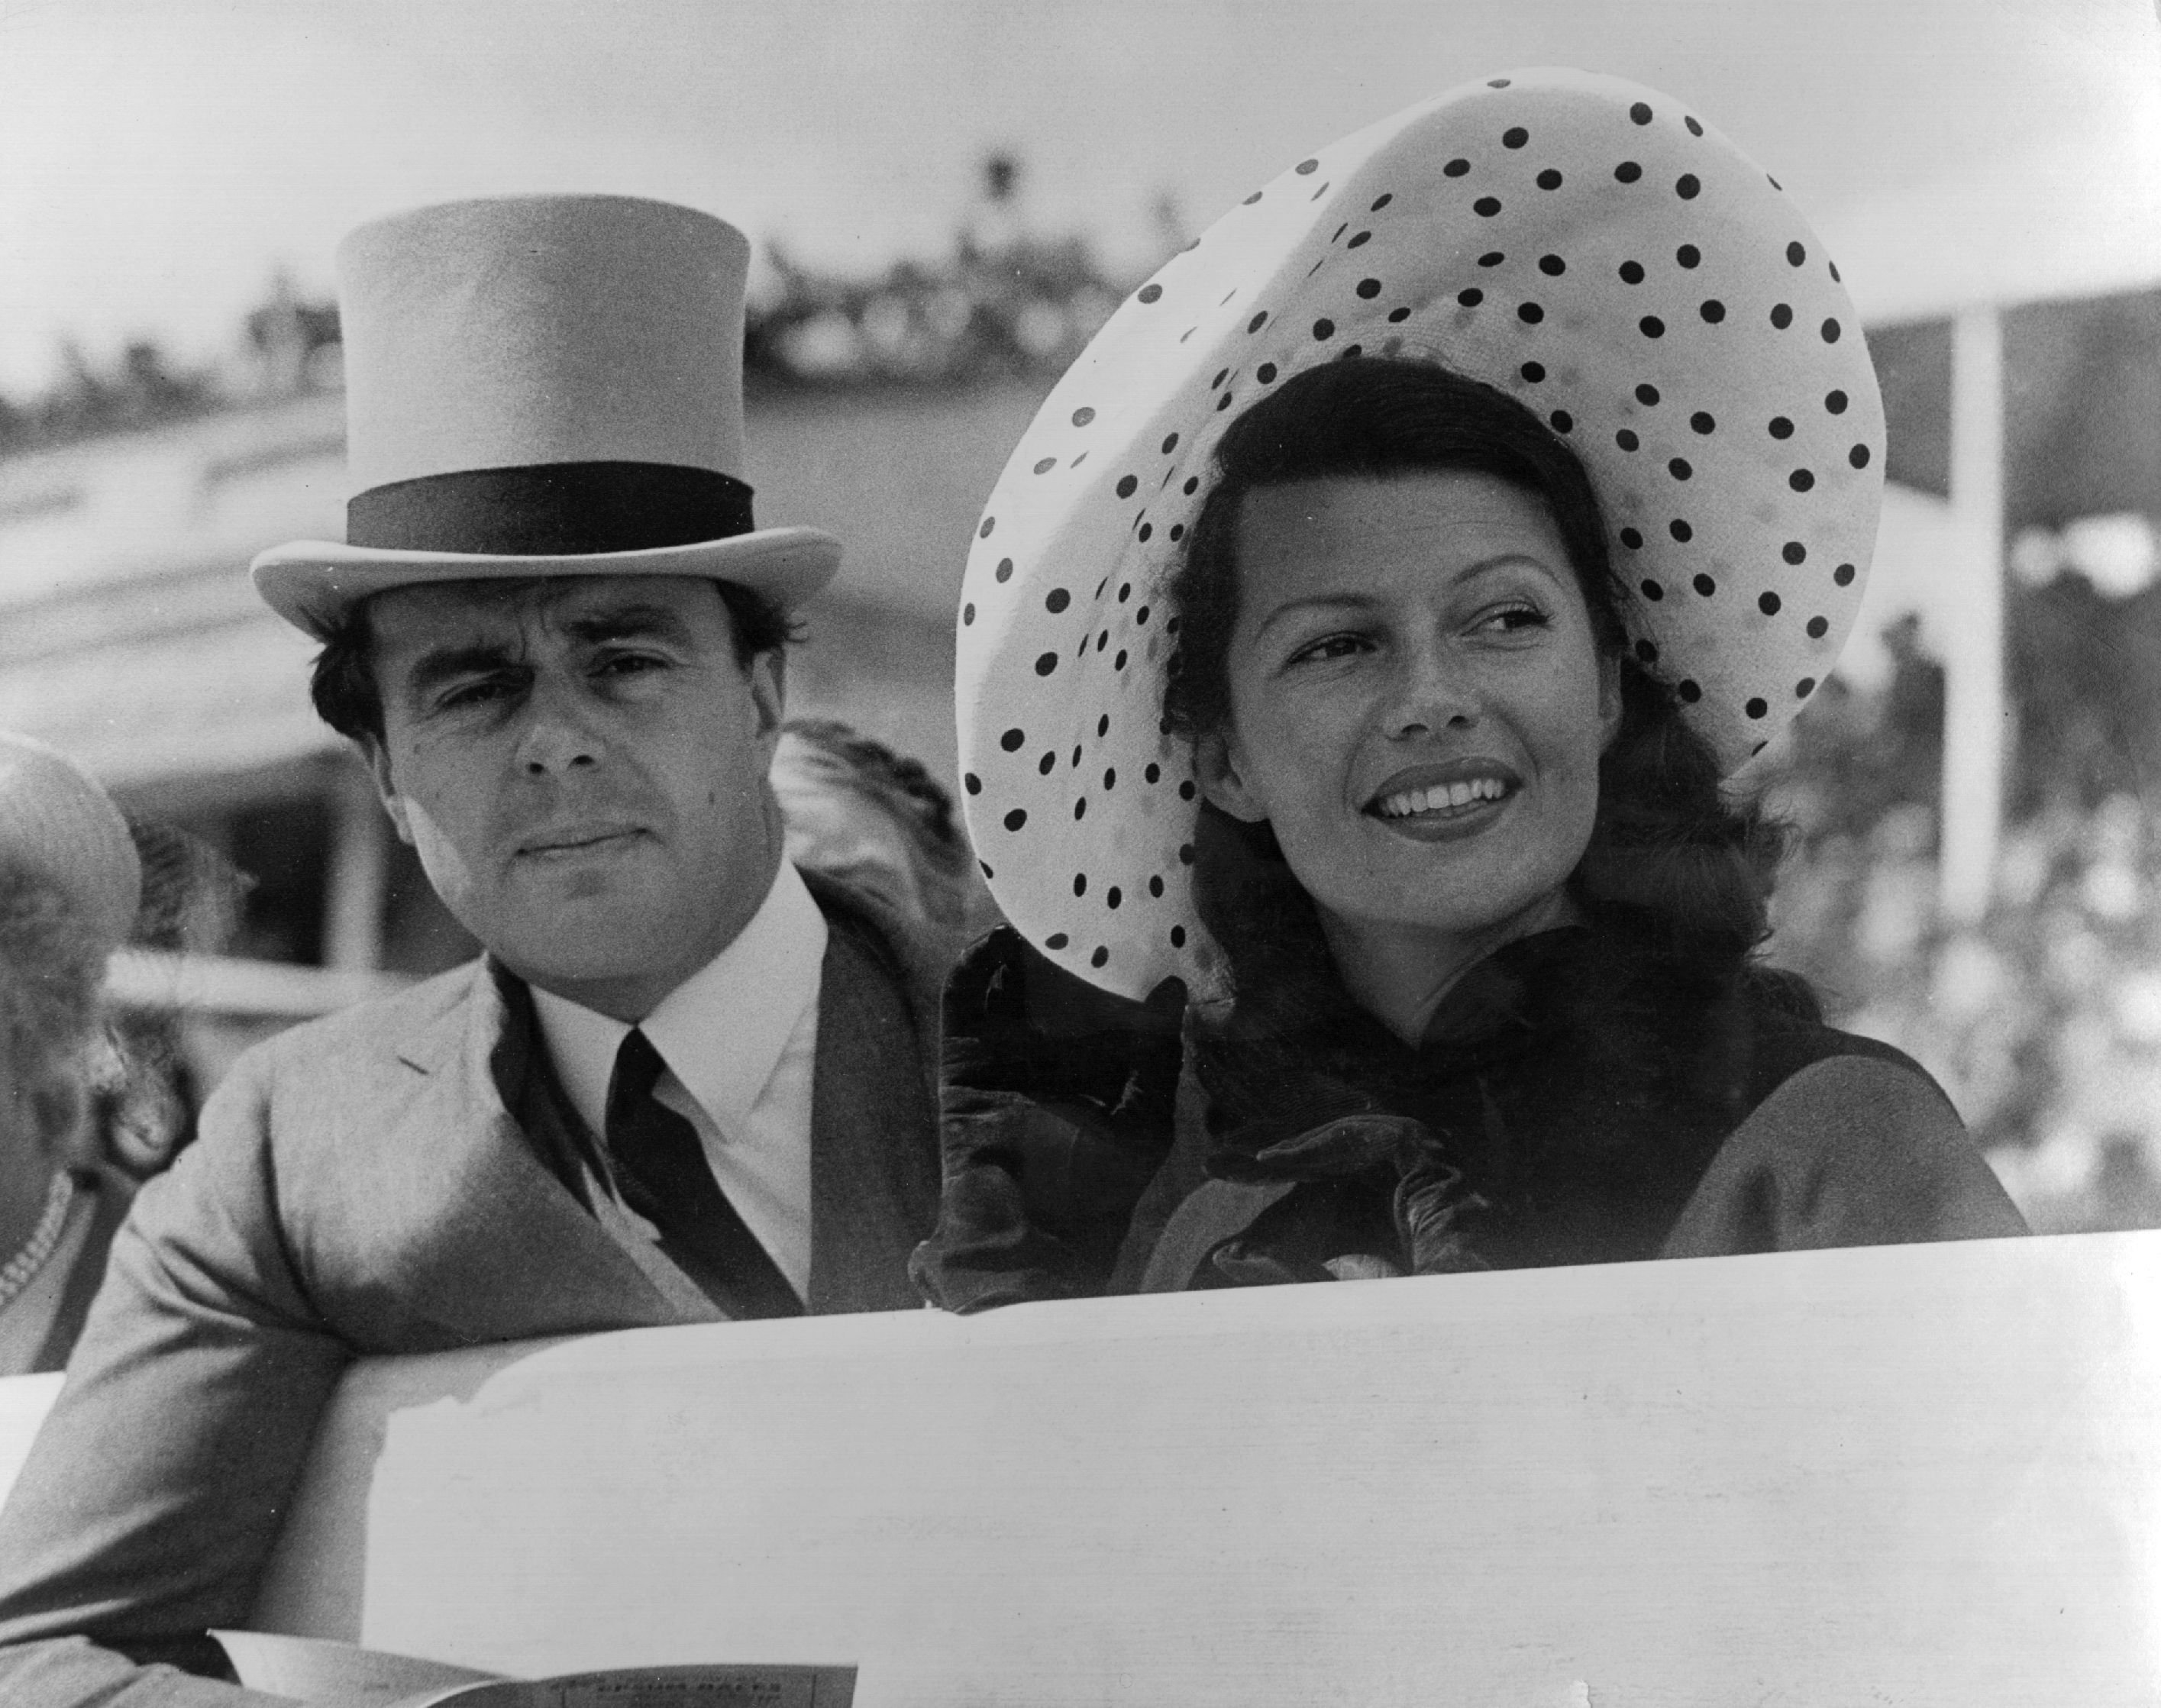 Rita Hayworth and her husband Prince Aly Khan at Epsom races  | Source: Getty